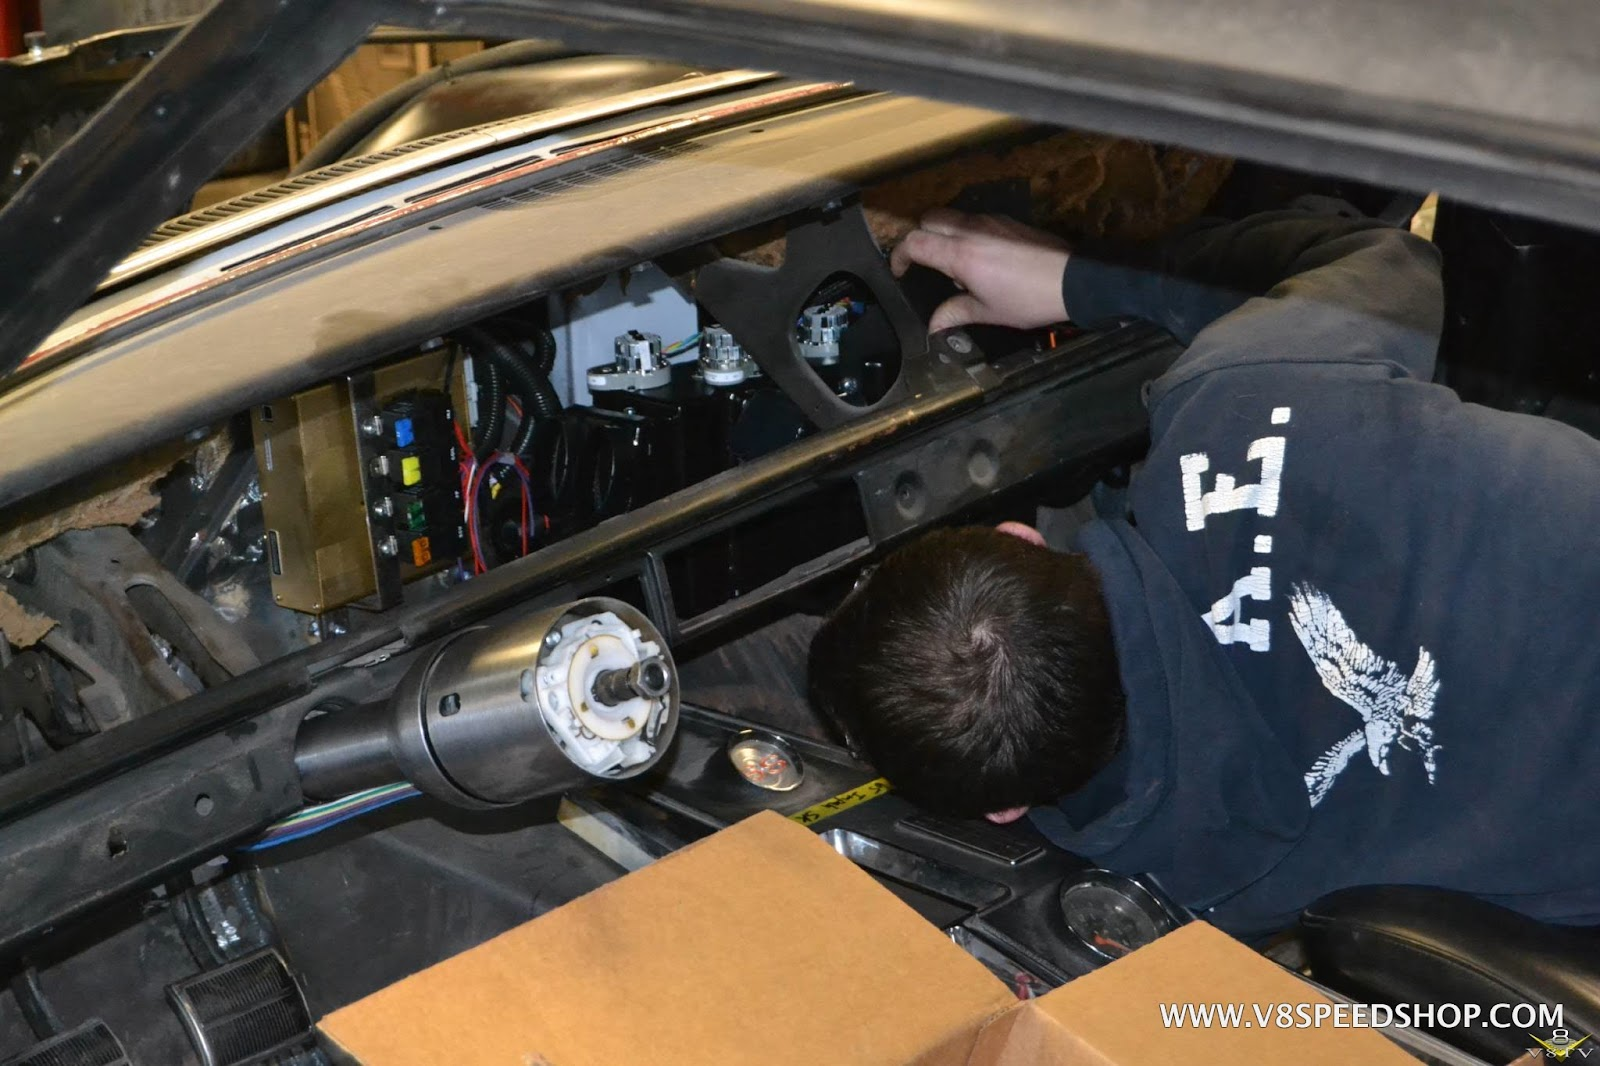 1965 Chevrolet Impala Ss Restoration Page 8 V8 Forum V8tv Vintage Air Wiring Harness An American Autowire Classic Update Replaces All The Old